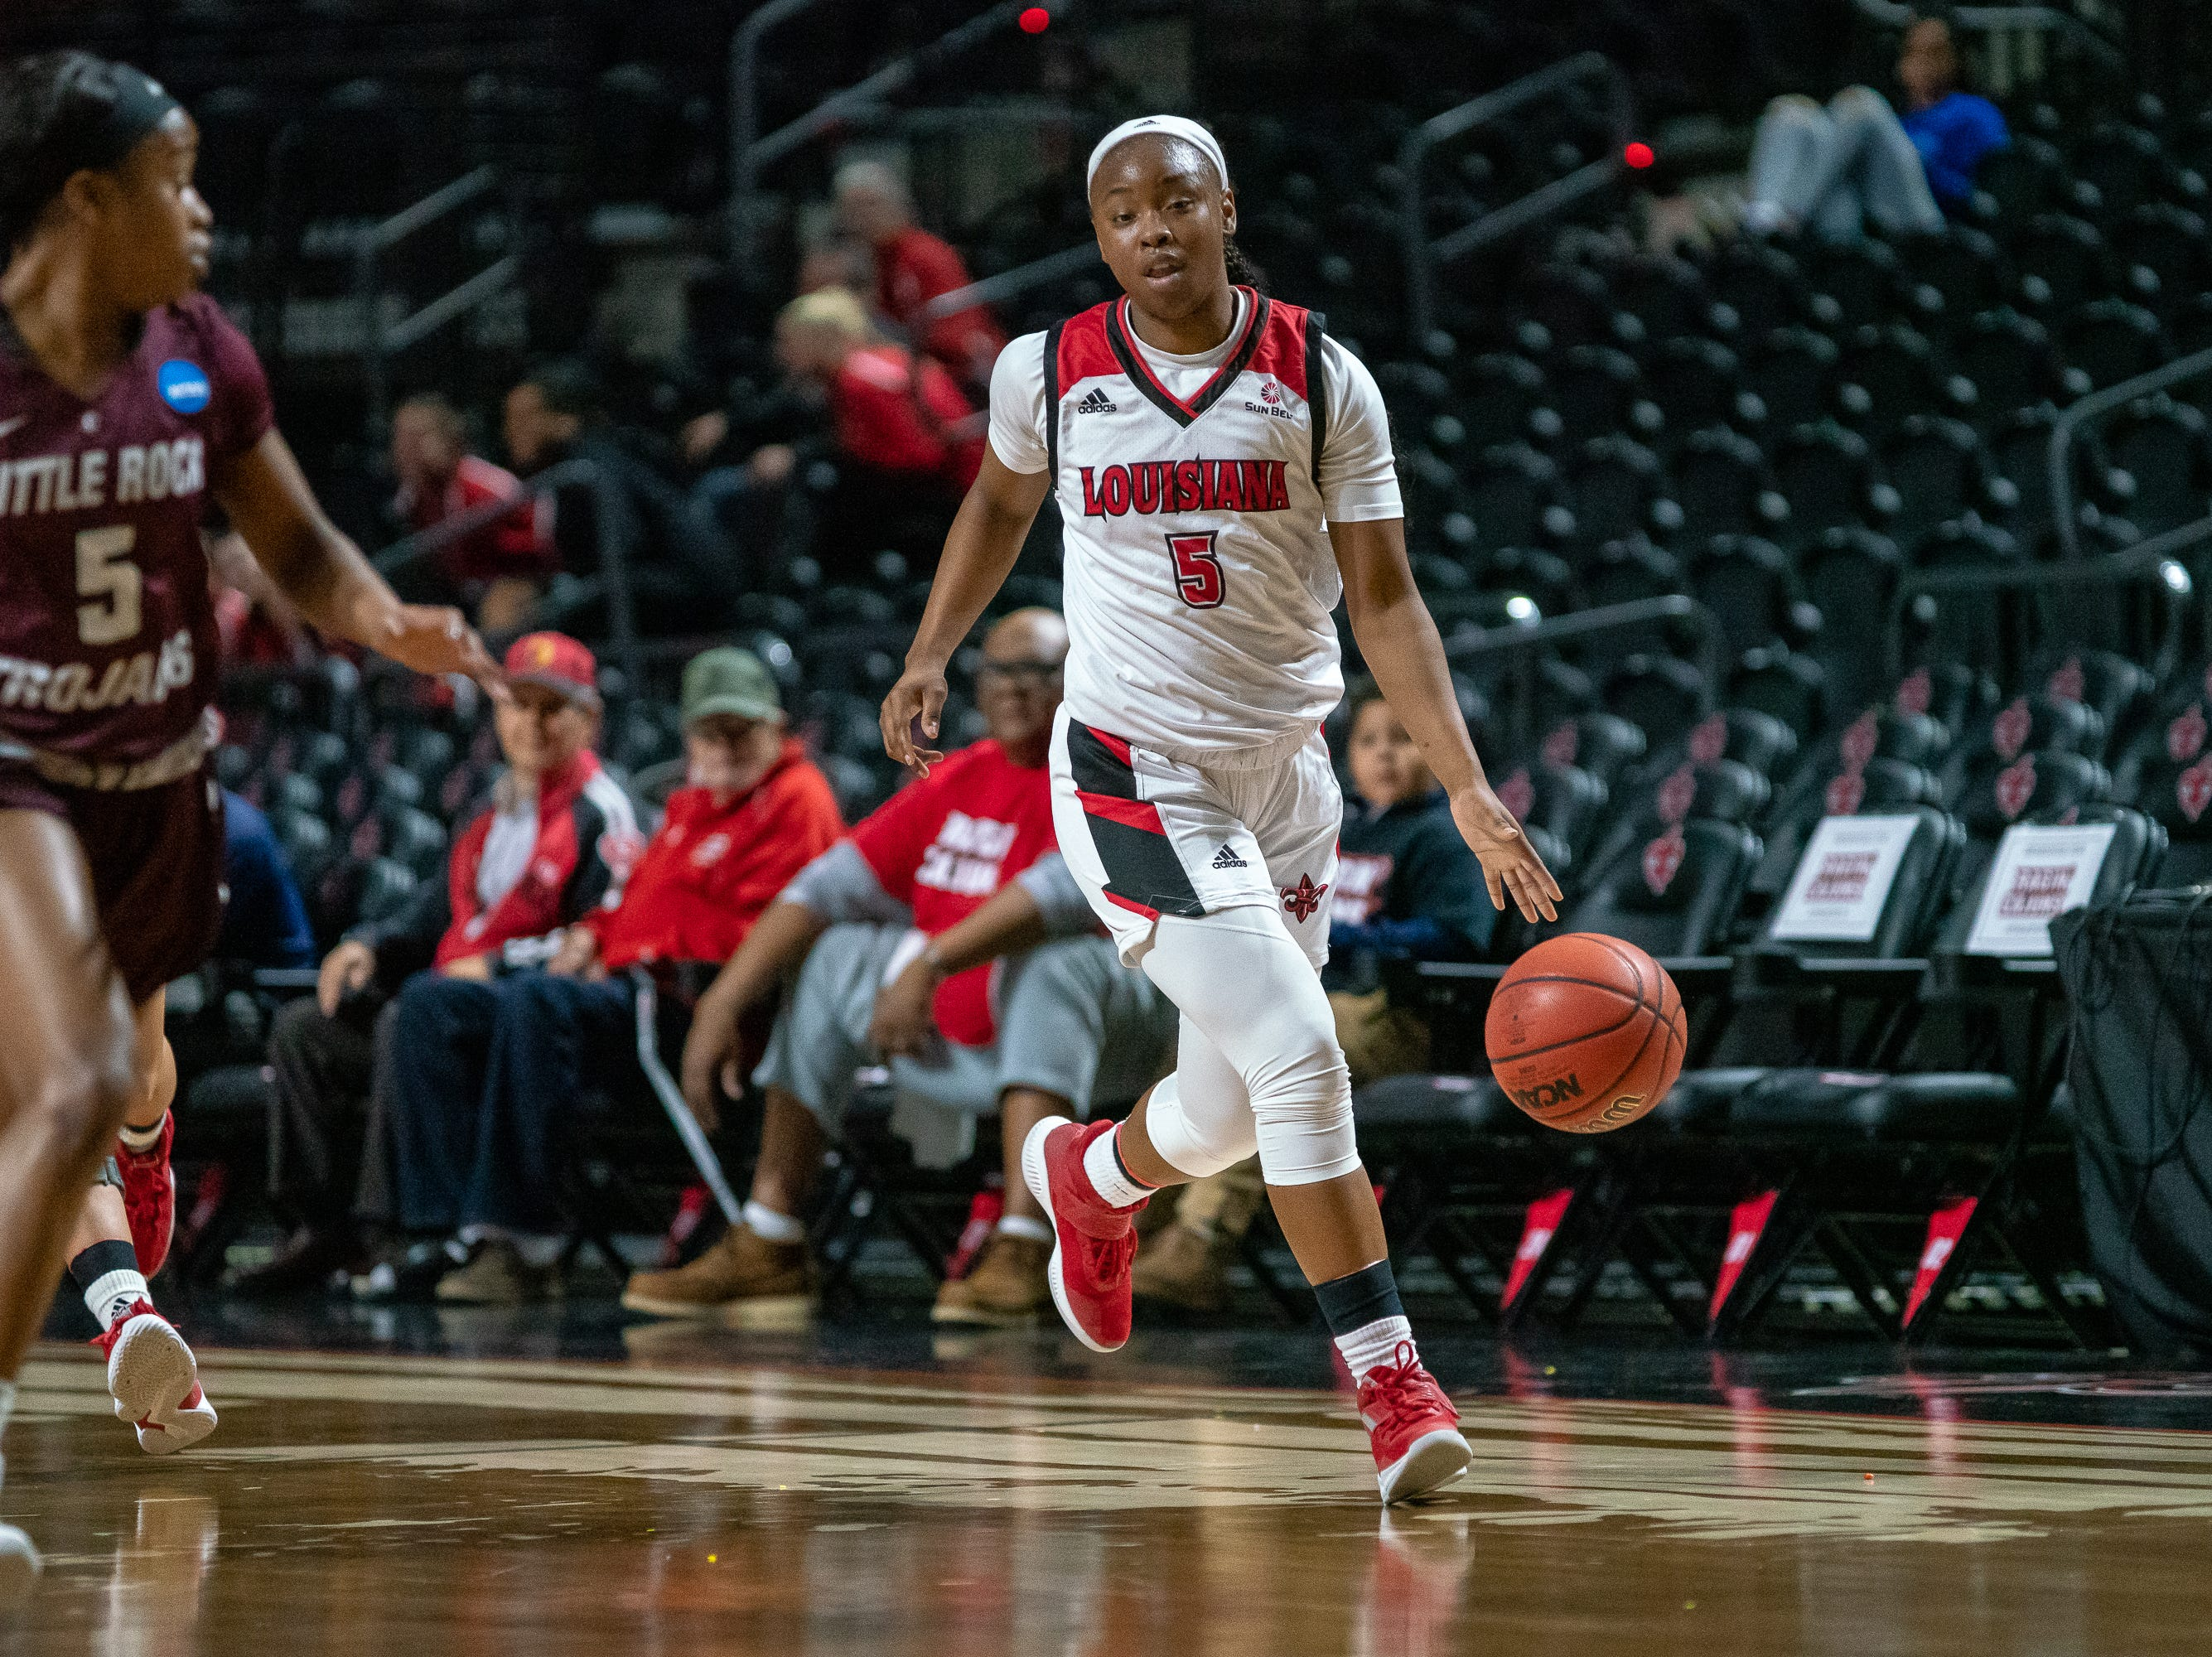 UL's Jomyra Mathis takes the ball down the court as the Ragin' Cajuns take on the Little Rock Trojans at the Cajundome on Thursday, March 7, 2019.